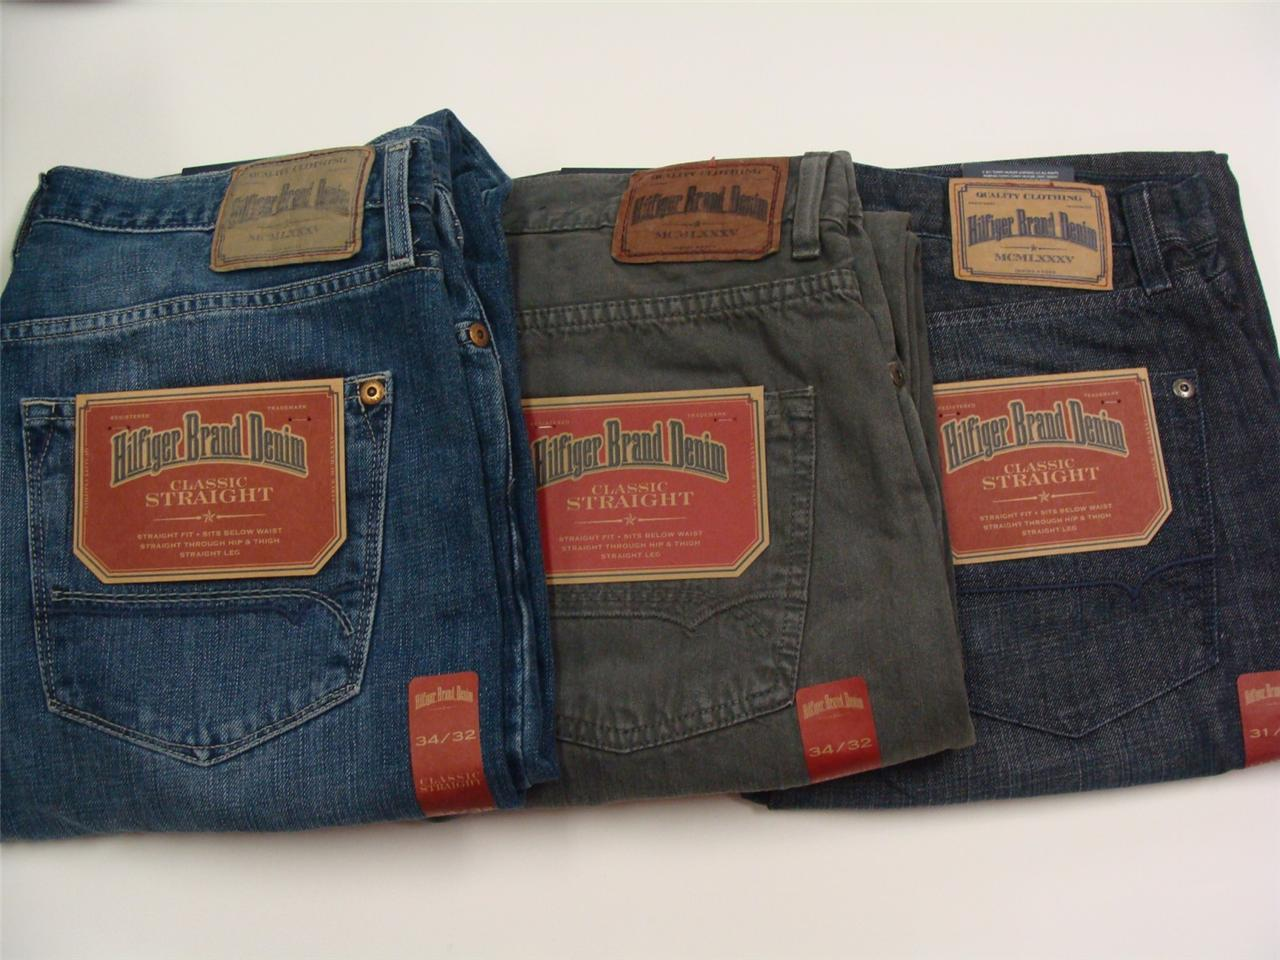 90s Jeans Brands